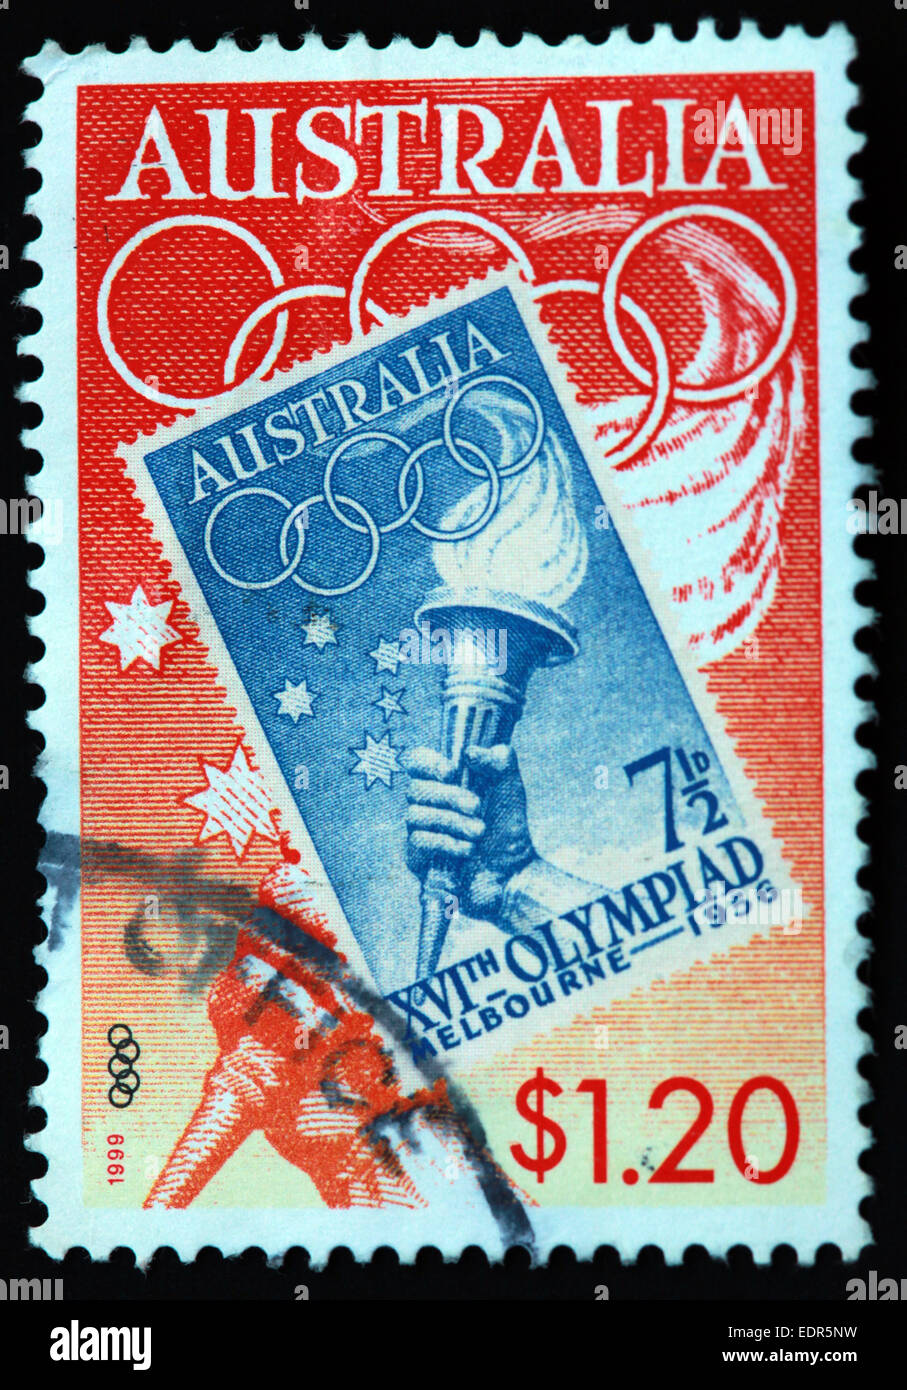 Olympics,Ring,rings,olympic,71/2d,red,blue,Used and Postmarked,Used,and,postmarked,perforated,Australia,stamp,Used,and,postmarked,Australia,Austrailian,Stamp,post,posting,mail,hobby,perforation,mark,postage,stamp,print,stamp,cancelled,stamp,payment,correspondence,postman,collectio,Gotonysmith,sport,sporting,games,Olympic Games,holding the flame,holding a flame,Olympic Flame,flame,fire letter,price,history,retro,Australian,Vintage,delivery,date,relationship,1999,communication,Oz,Australia,DownUnder,classic rare unique Austrailian financial,investment,invest,value,British,empire,nation,canceled,printed on black background,close-up,closeup,close,up,sent,send,philately,mailing,shipping,postoffice,office,isolated,circa,special,colour,color,postmarked,marked,airmail,aged,antique,retro,cutting,historic,old,stamps,collection,stamp collection,album,Timbre,Sello,Stempel,Selo,Down Under,Black background